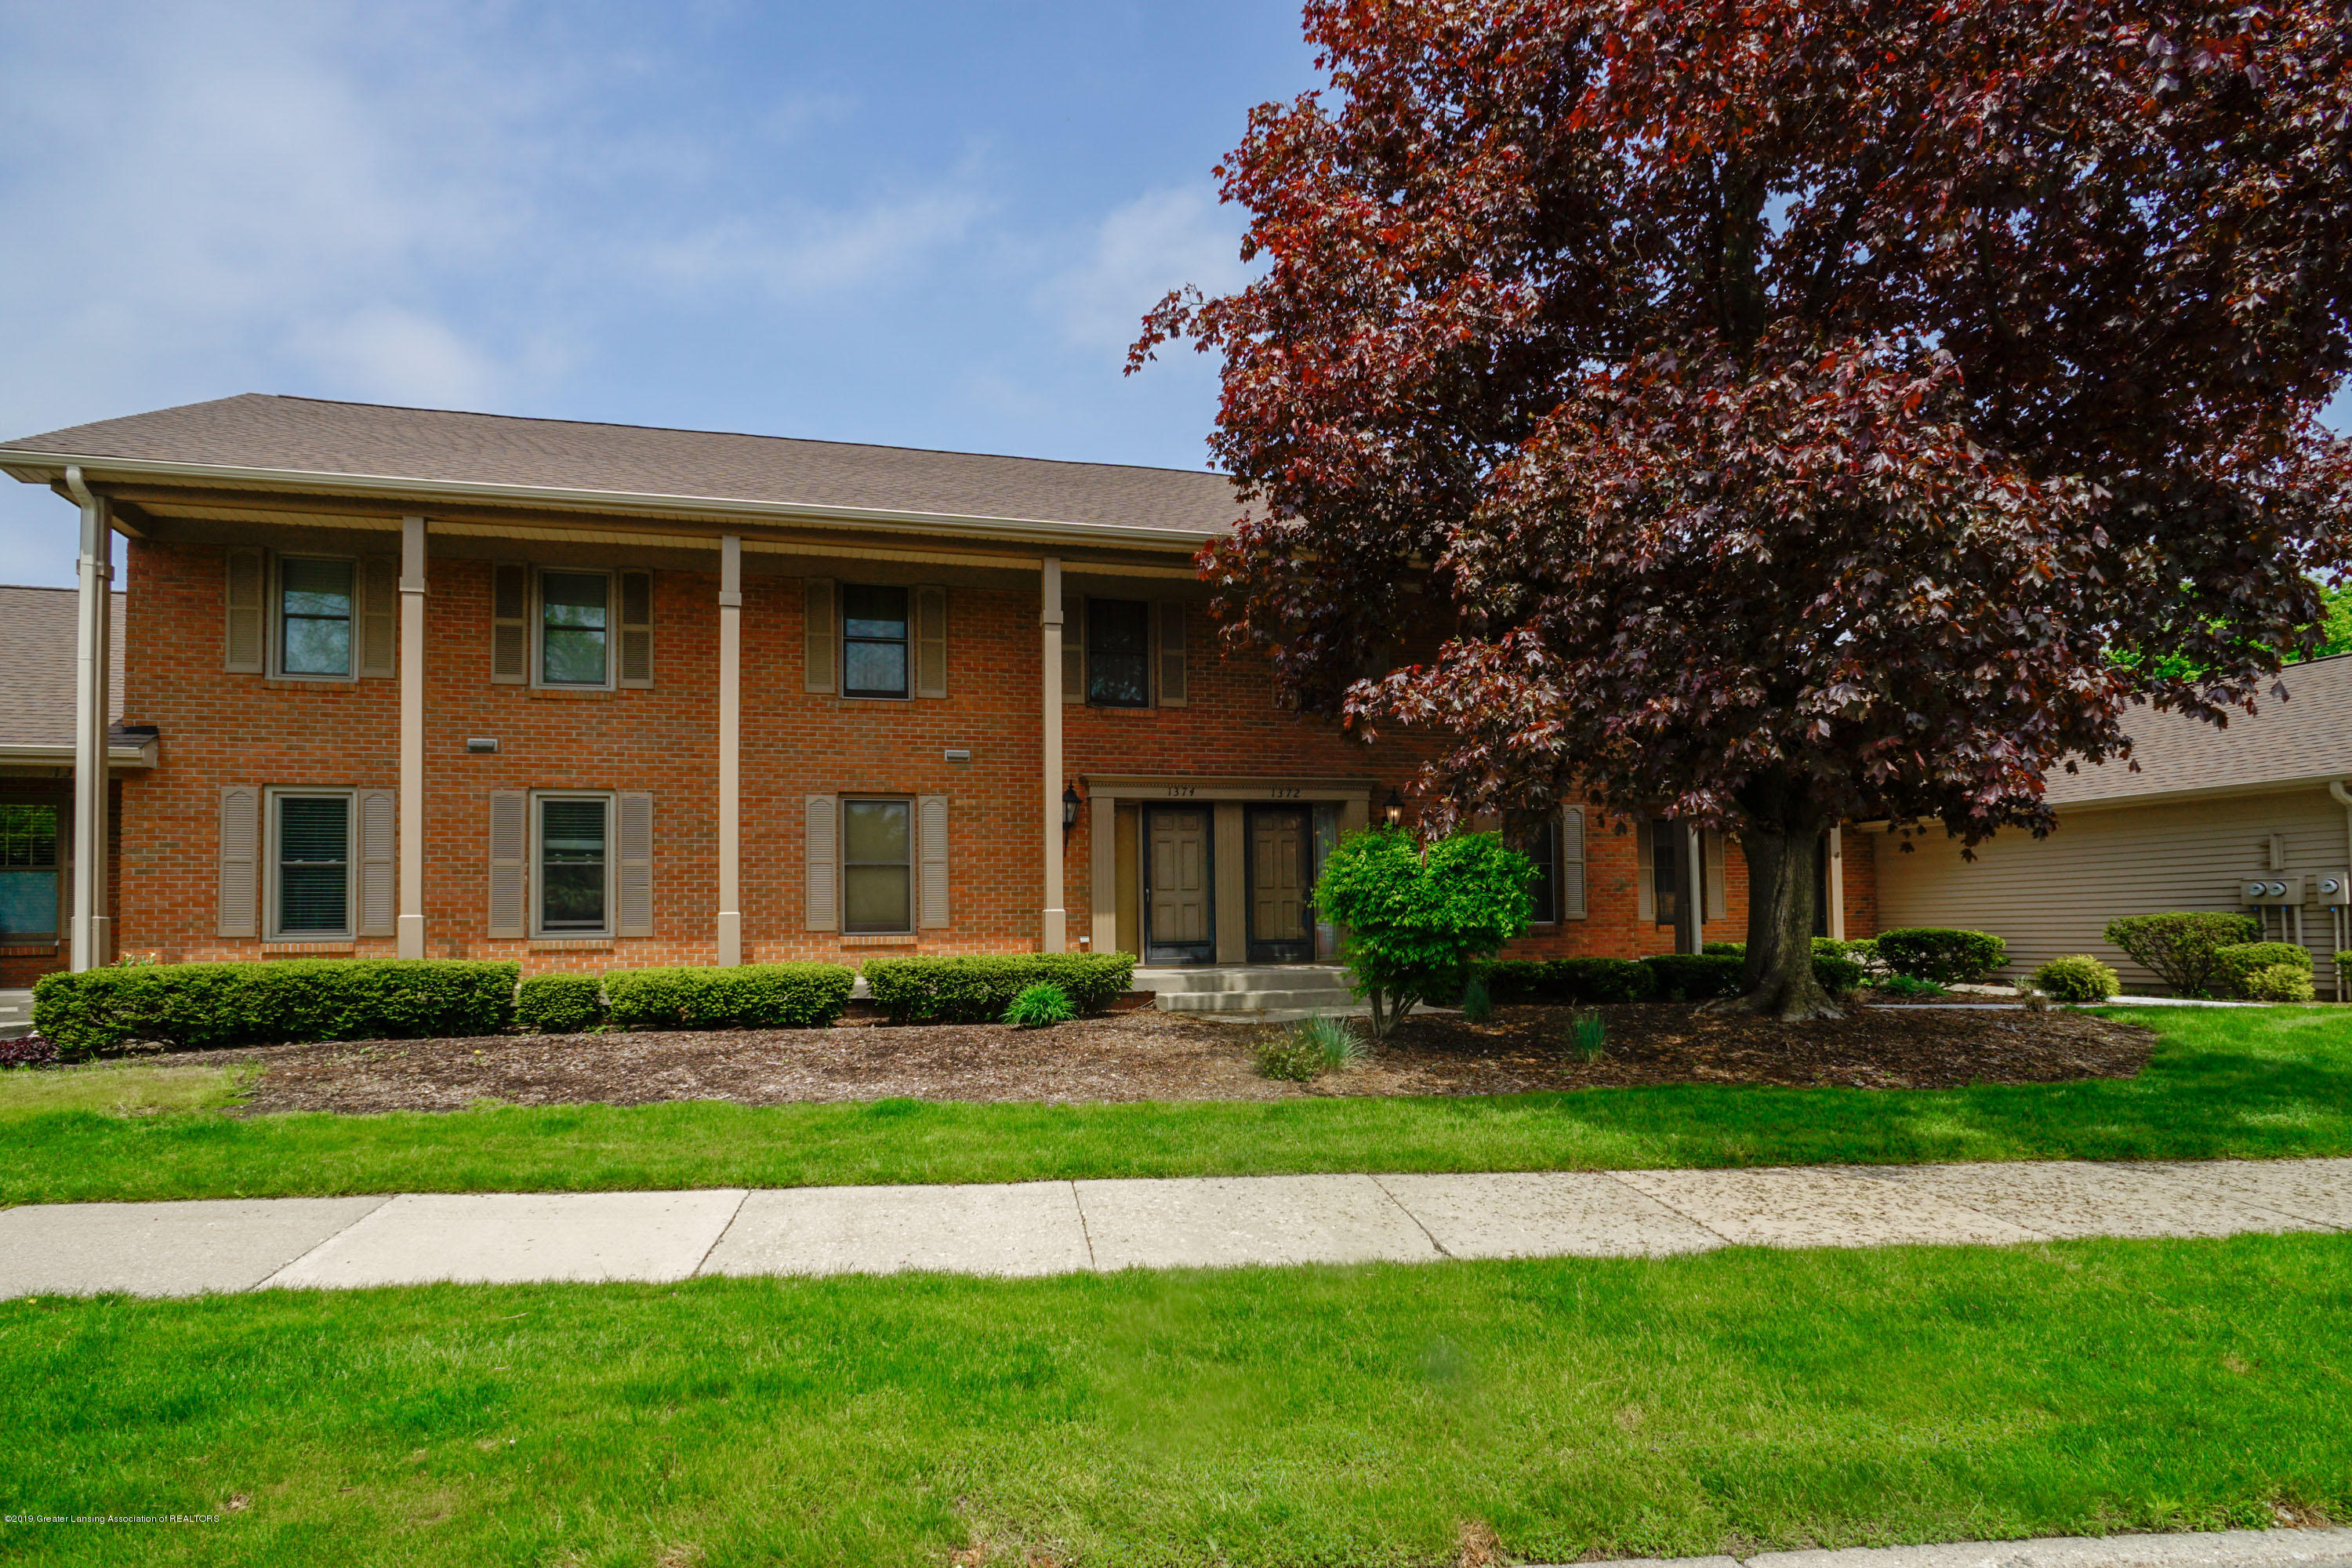 1372 Chartwell Carriage Way N - 1372Chartwell-3 - 1